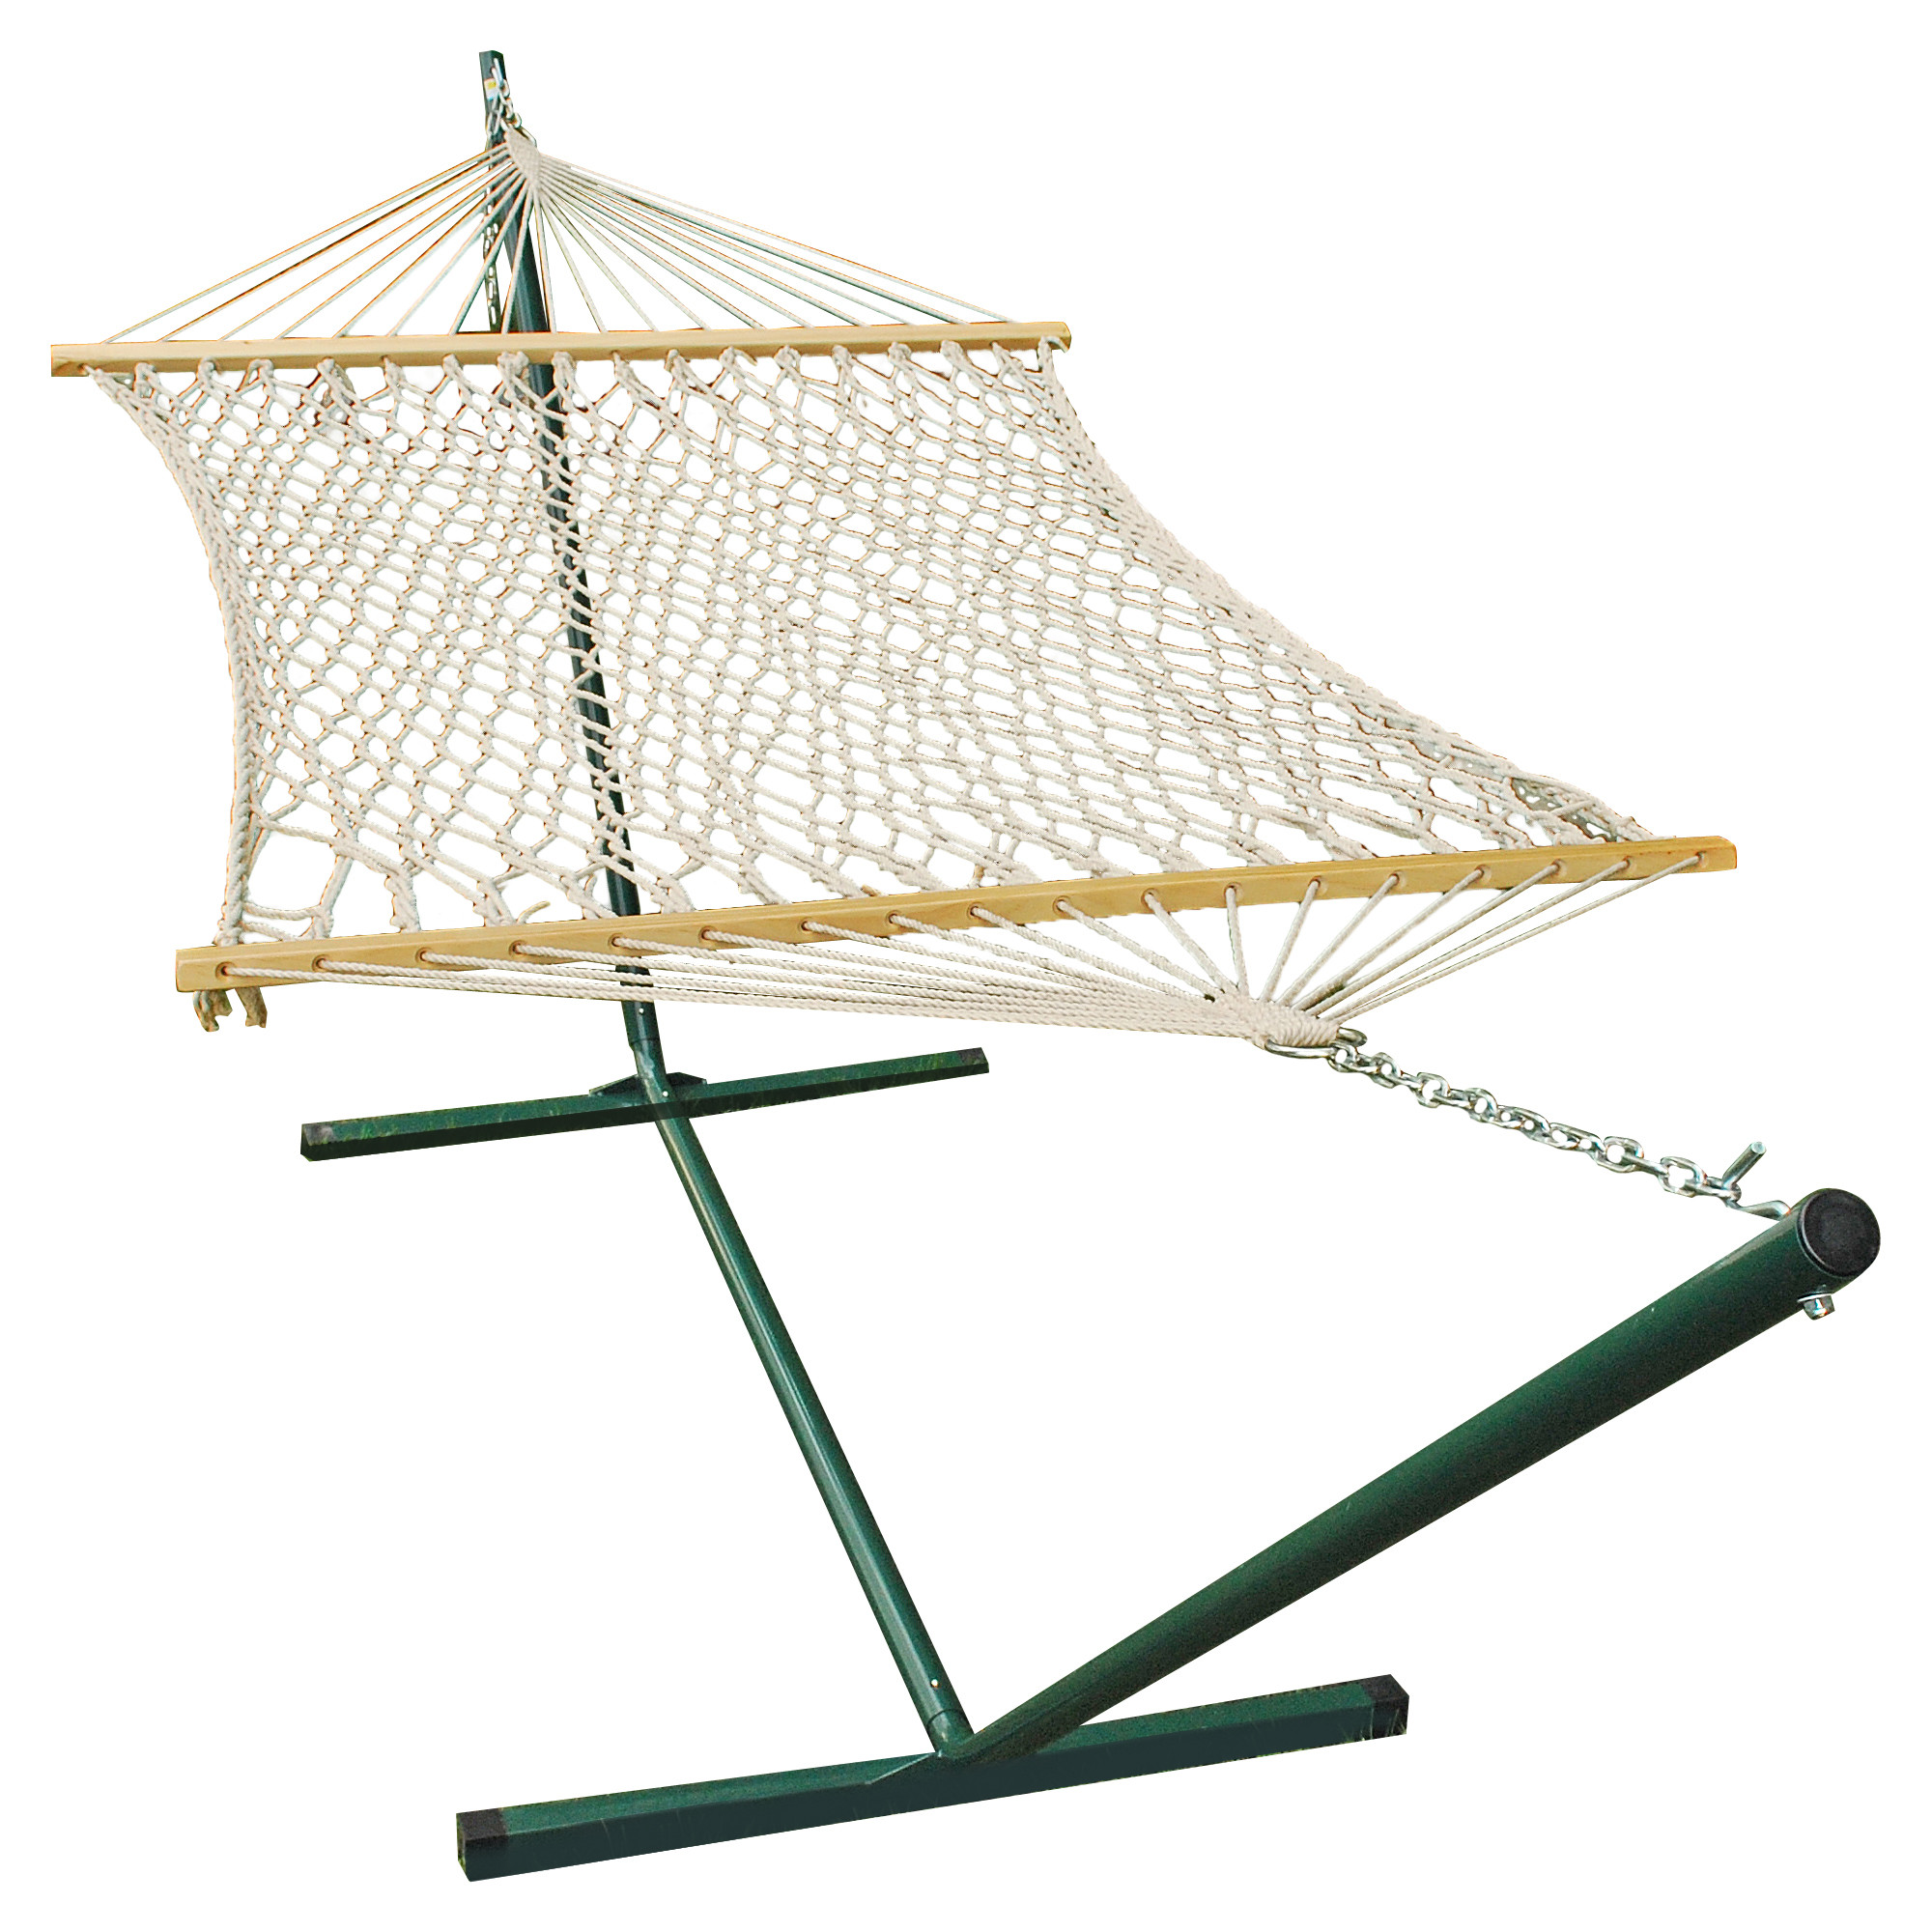 12' Cotton Rope Hammock and Stand Combination